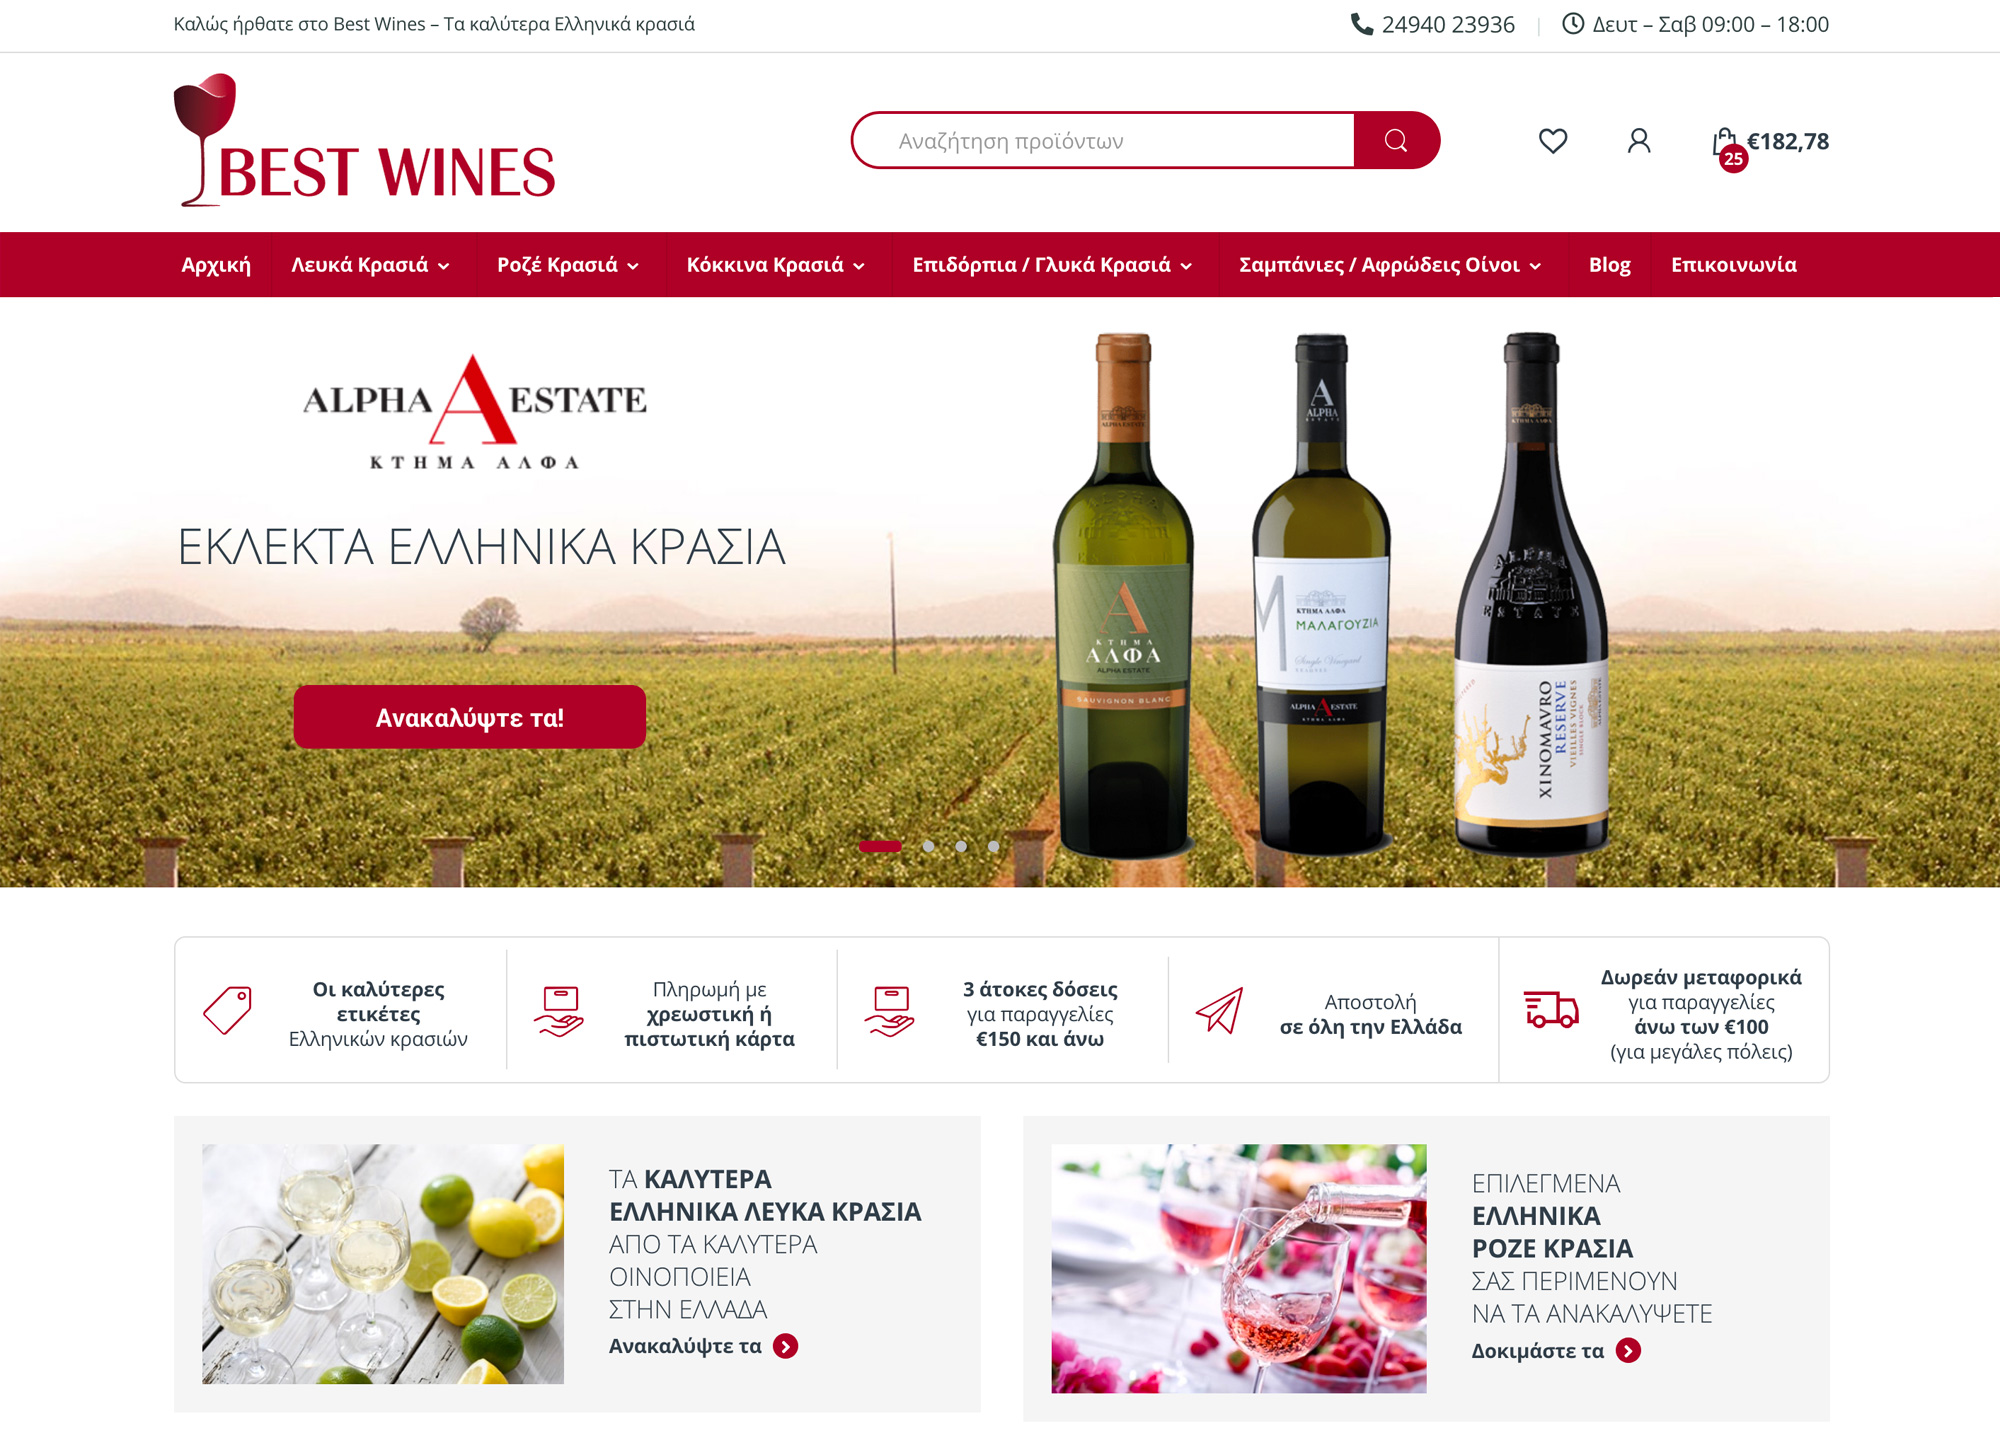 Best Wines eshop development